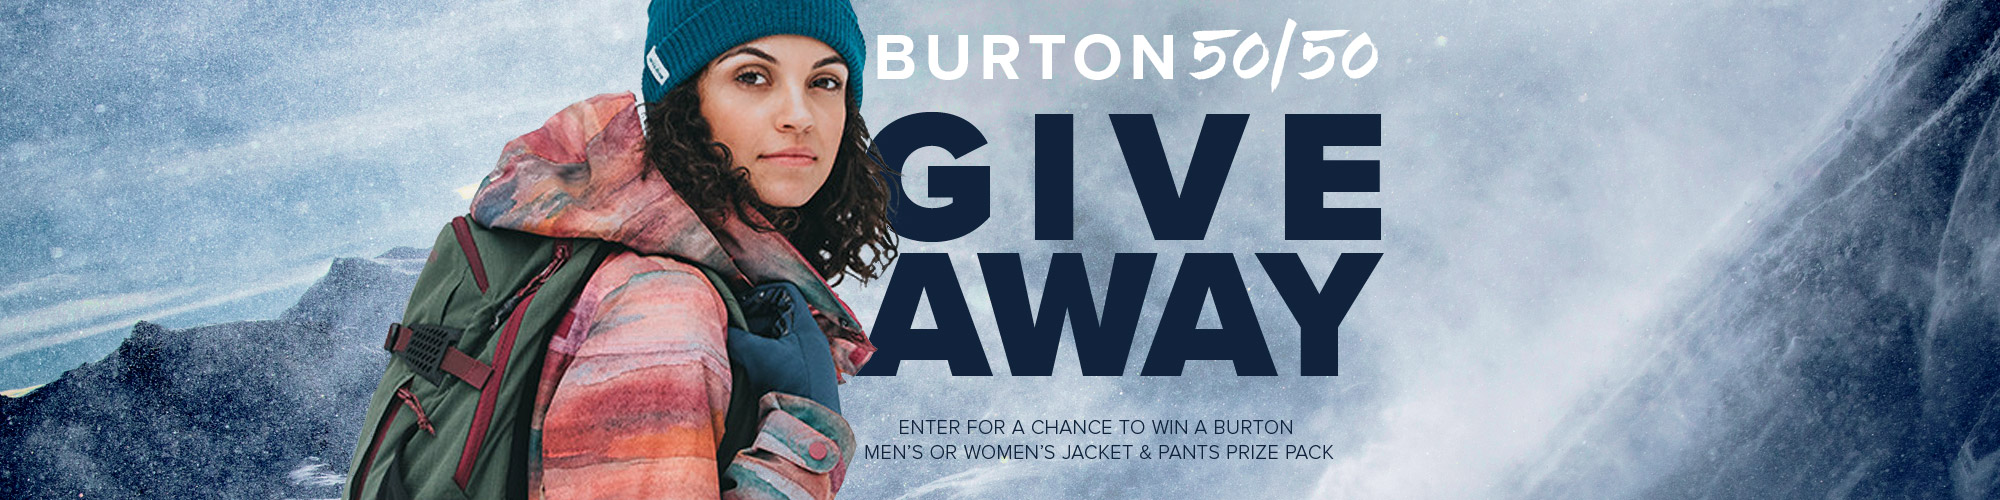 Burton 50/50 Giveaway. Enter for a chance to win a Burton Men's or Women's jacket and pants prize pack.